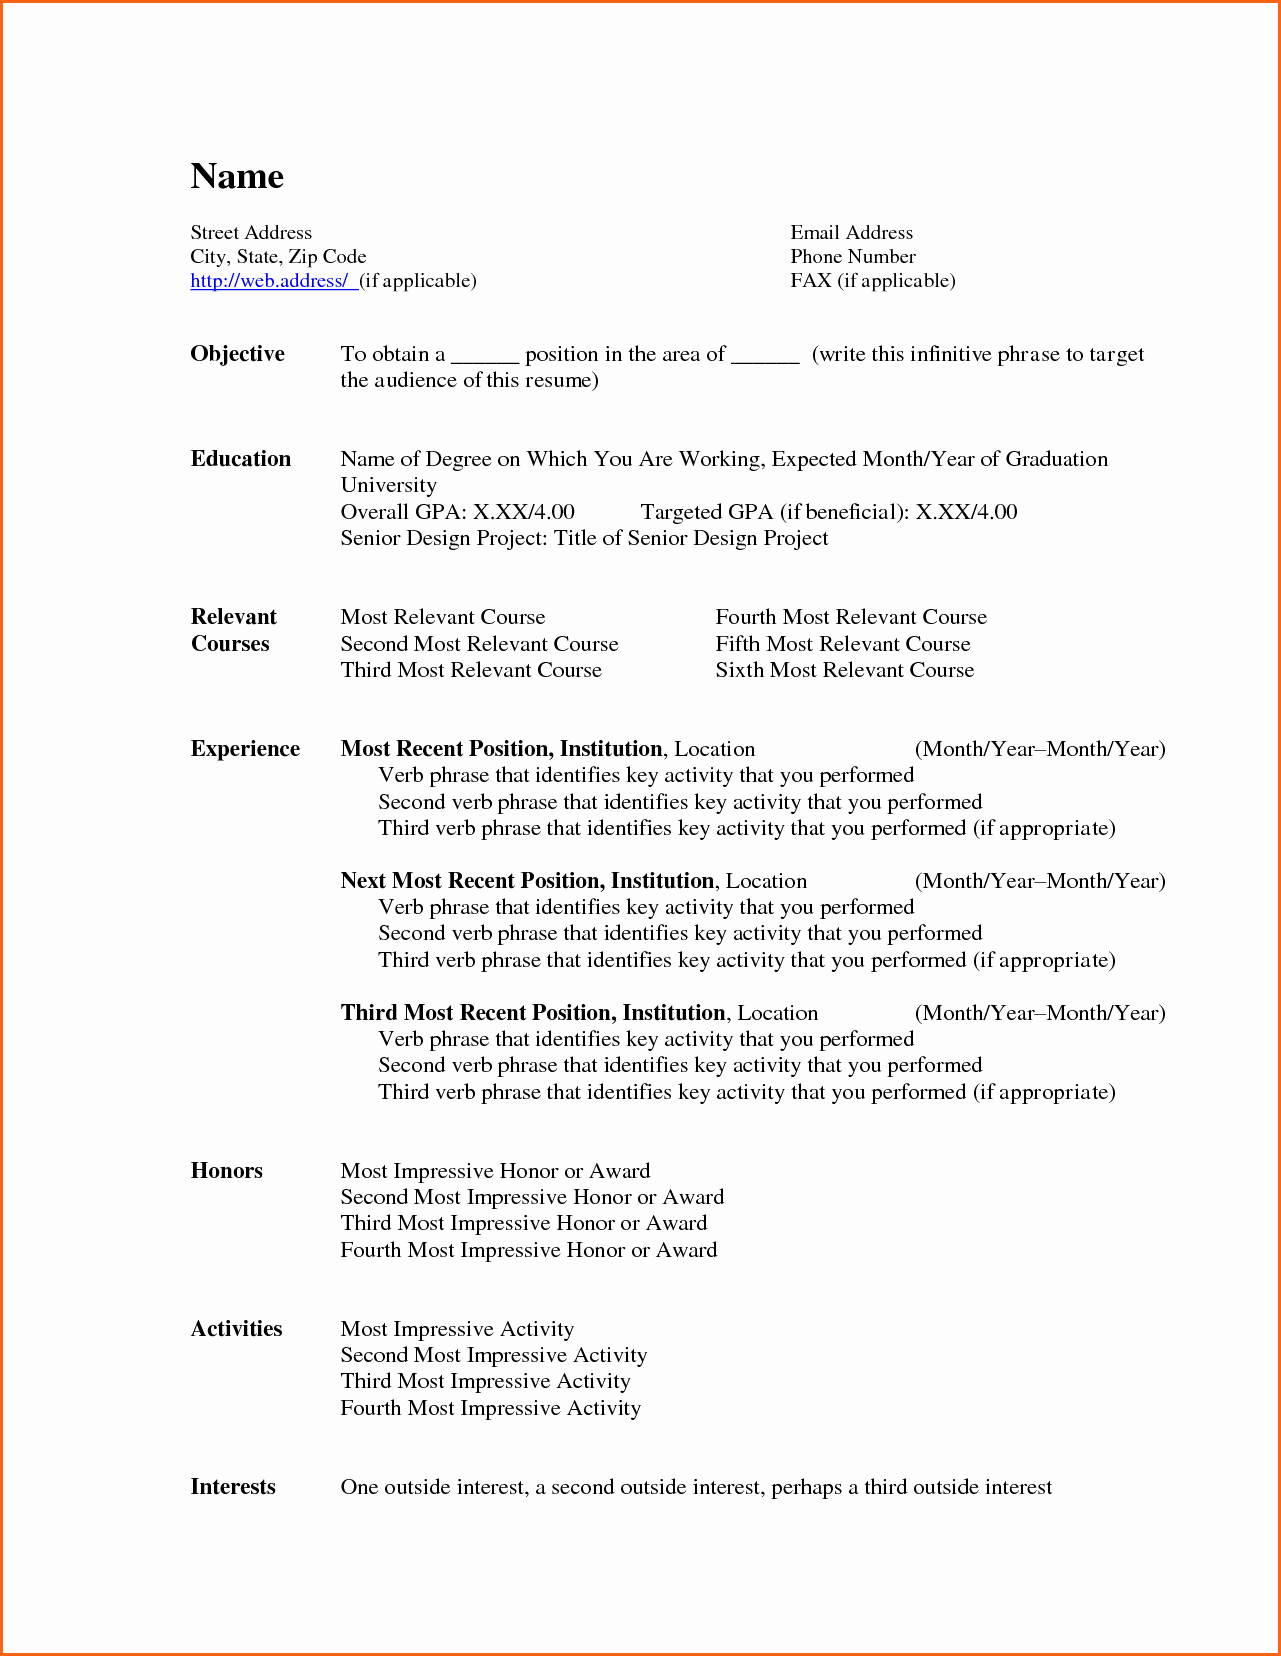 Resumes On Microsoft Word 2007 Unique 6 Free Resume Templates Microsoft Word 2007 Bud